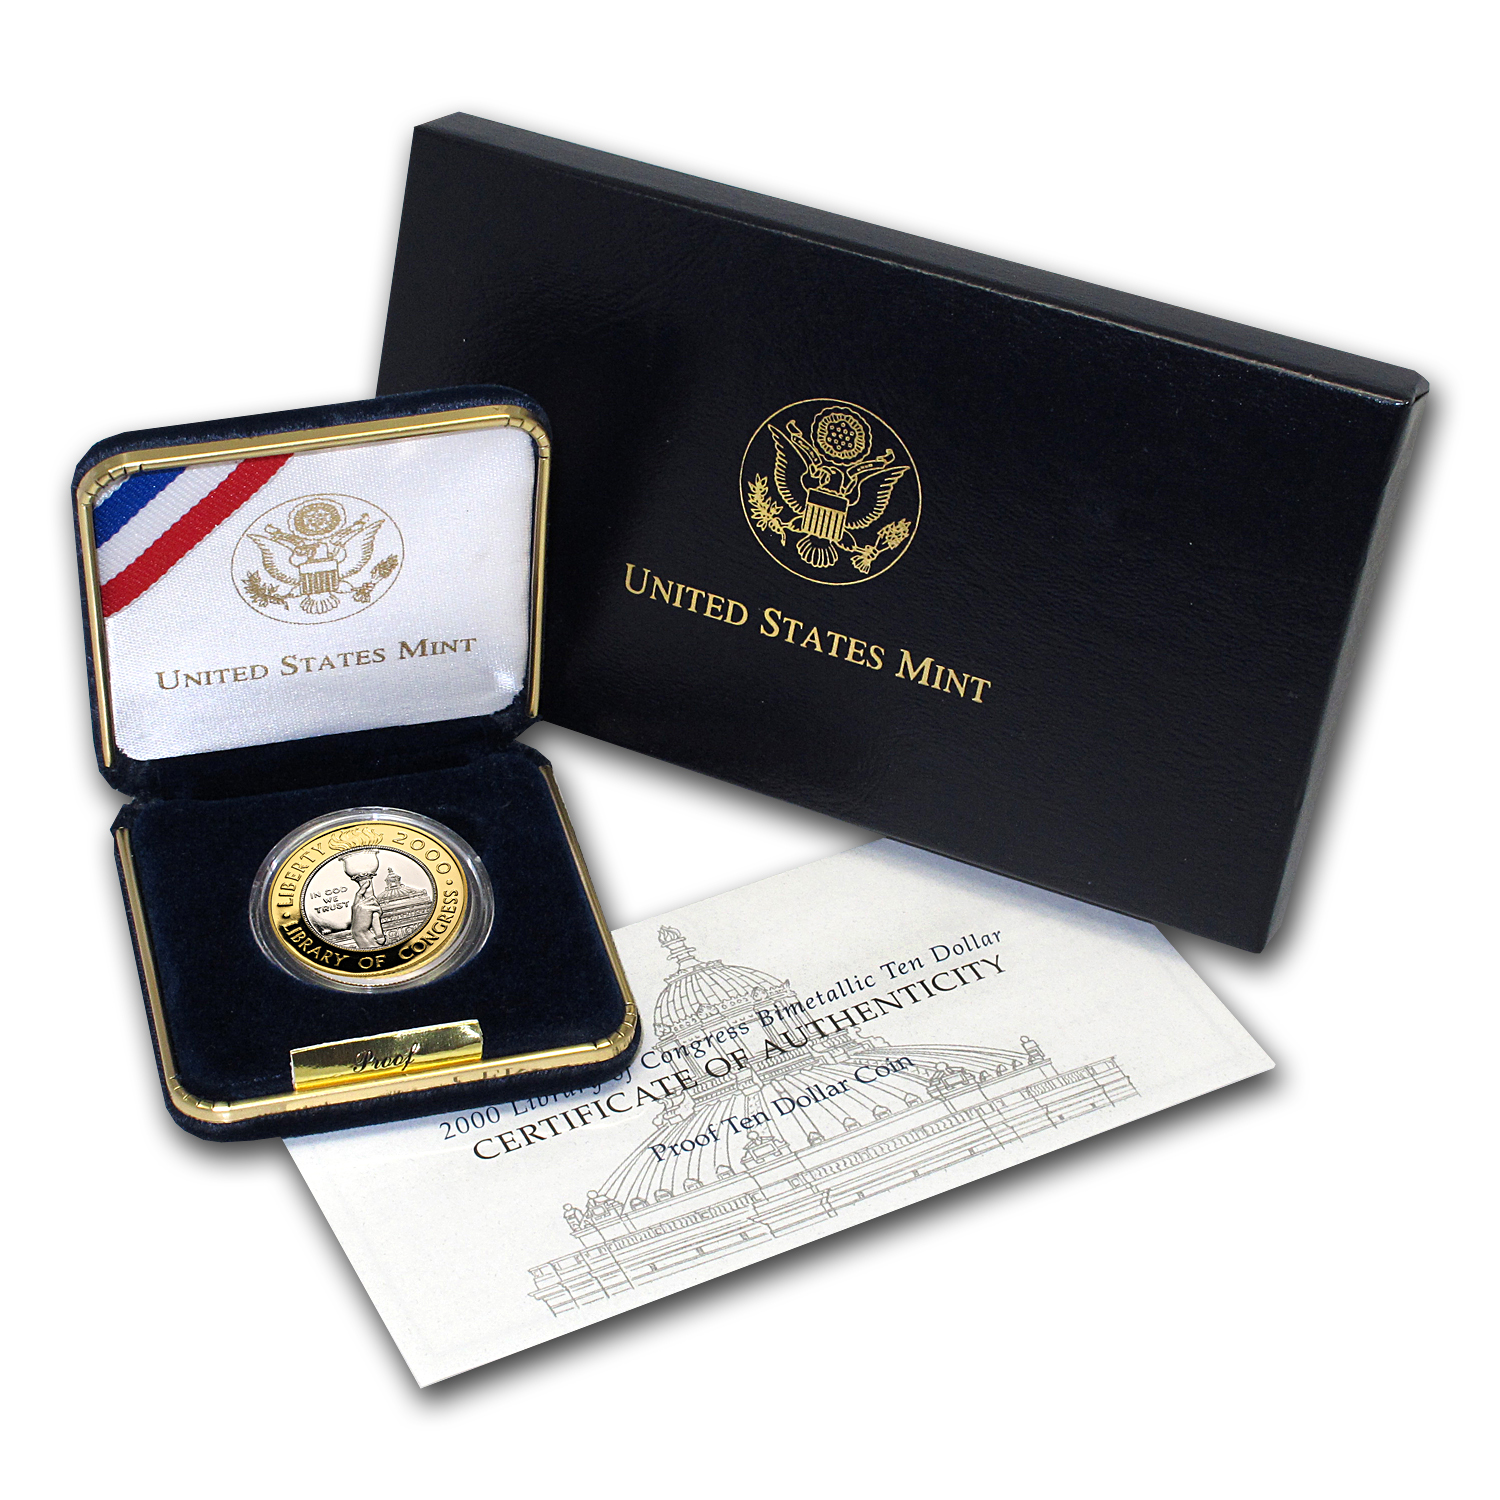 2000-W Library of Congress - $10 Gold/Platinum Commem - Proof